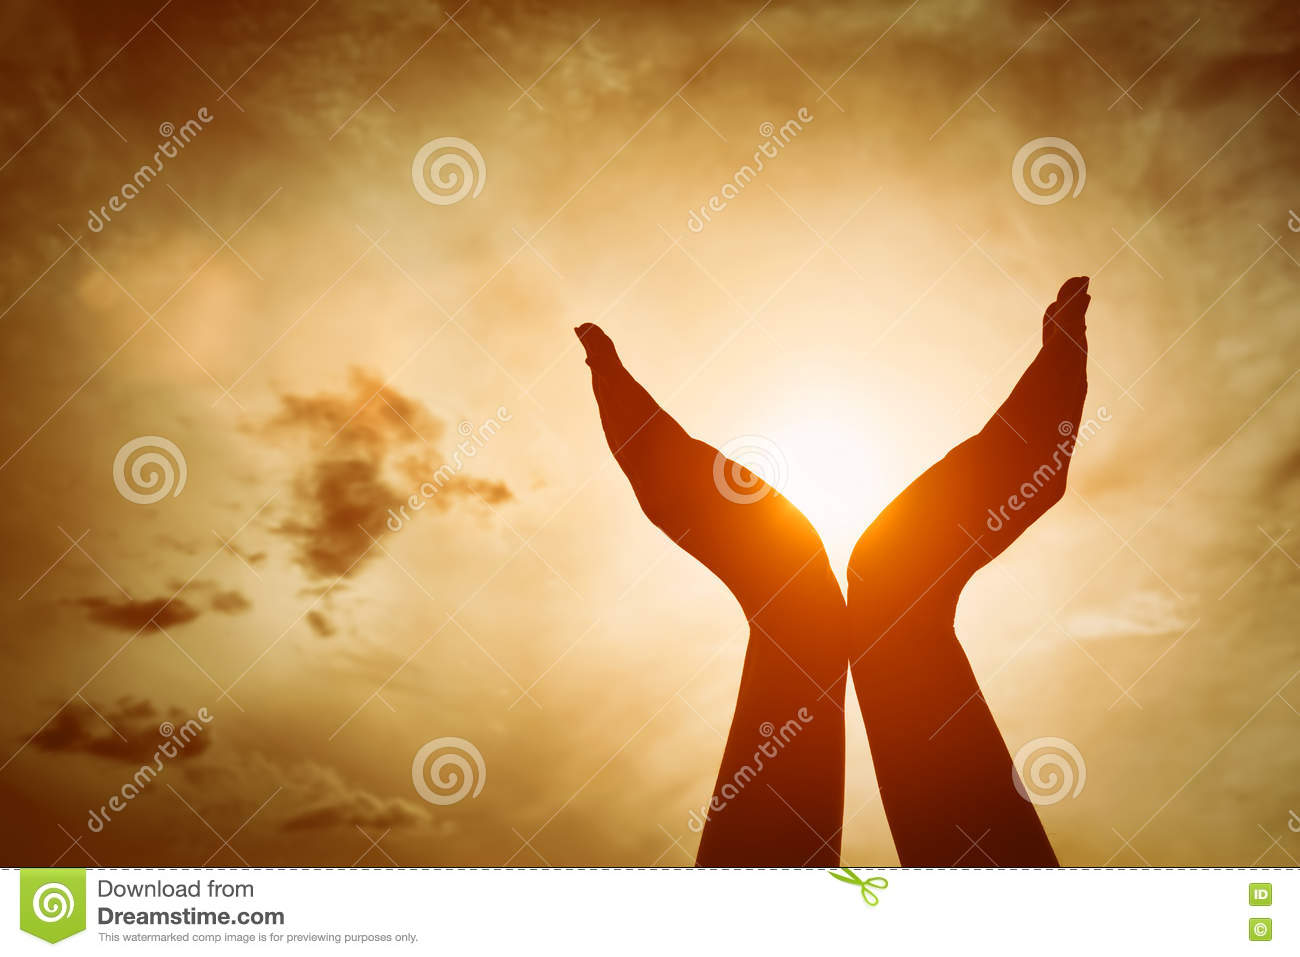 Raised hands catching sun on sunset sky. Concept of spirituality, wellbeing, positive energy